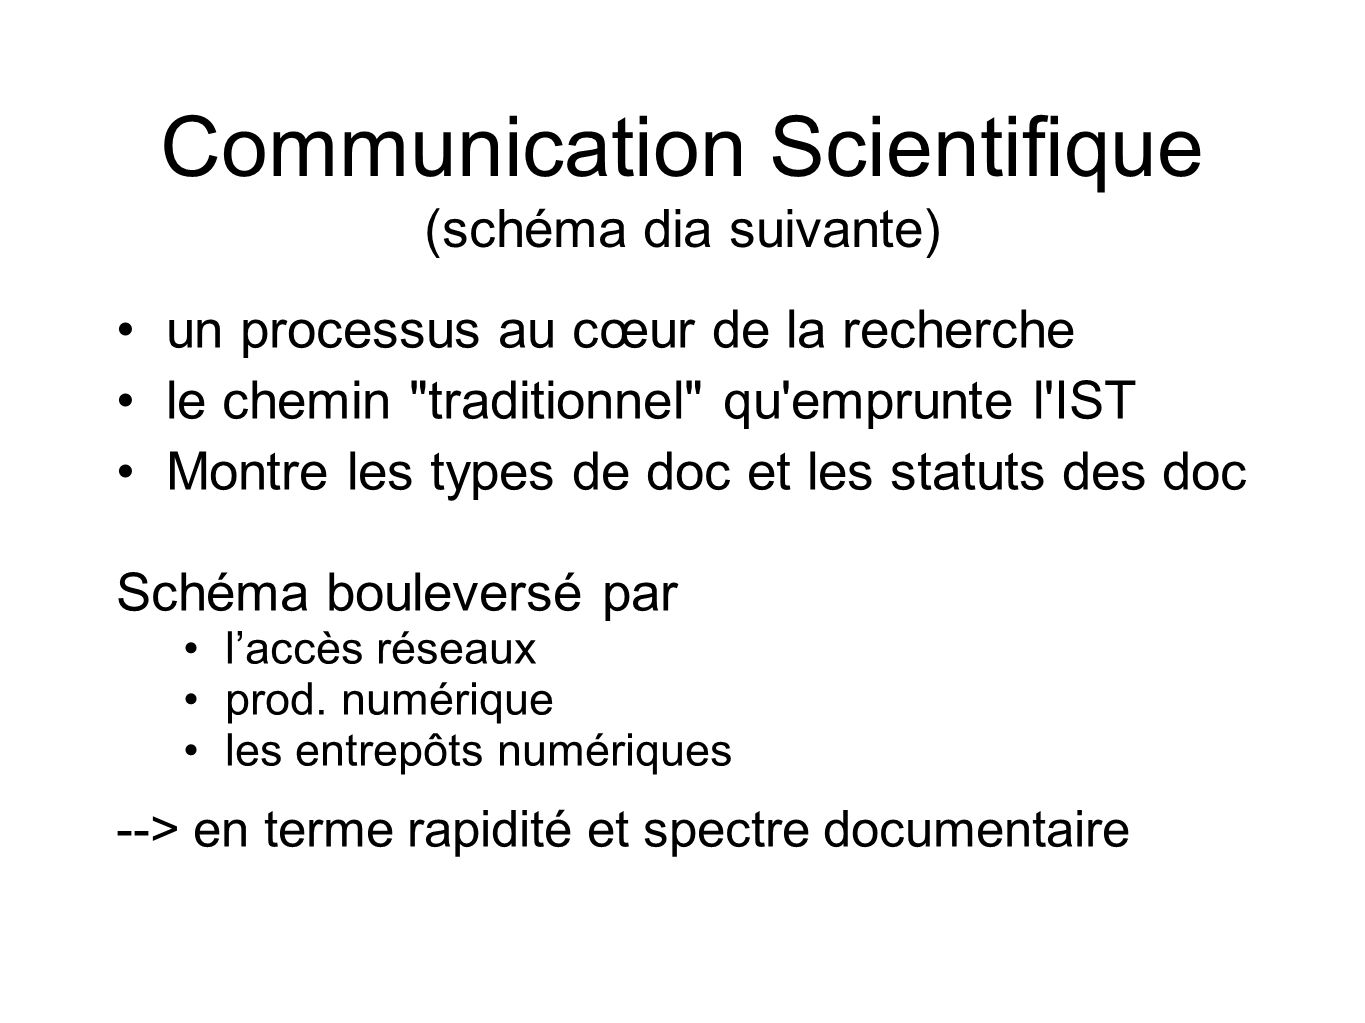 Communication scientifique modèle 70 Source : Julie M. Hurd JASIST 51(14), 2000 Lien vers 2020